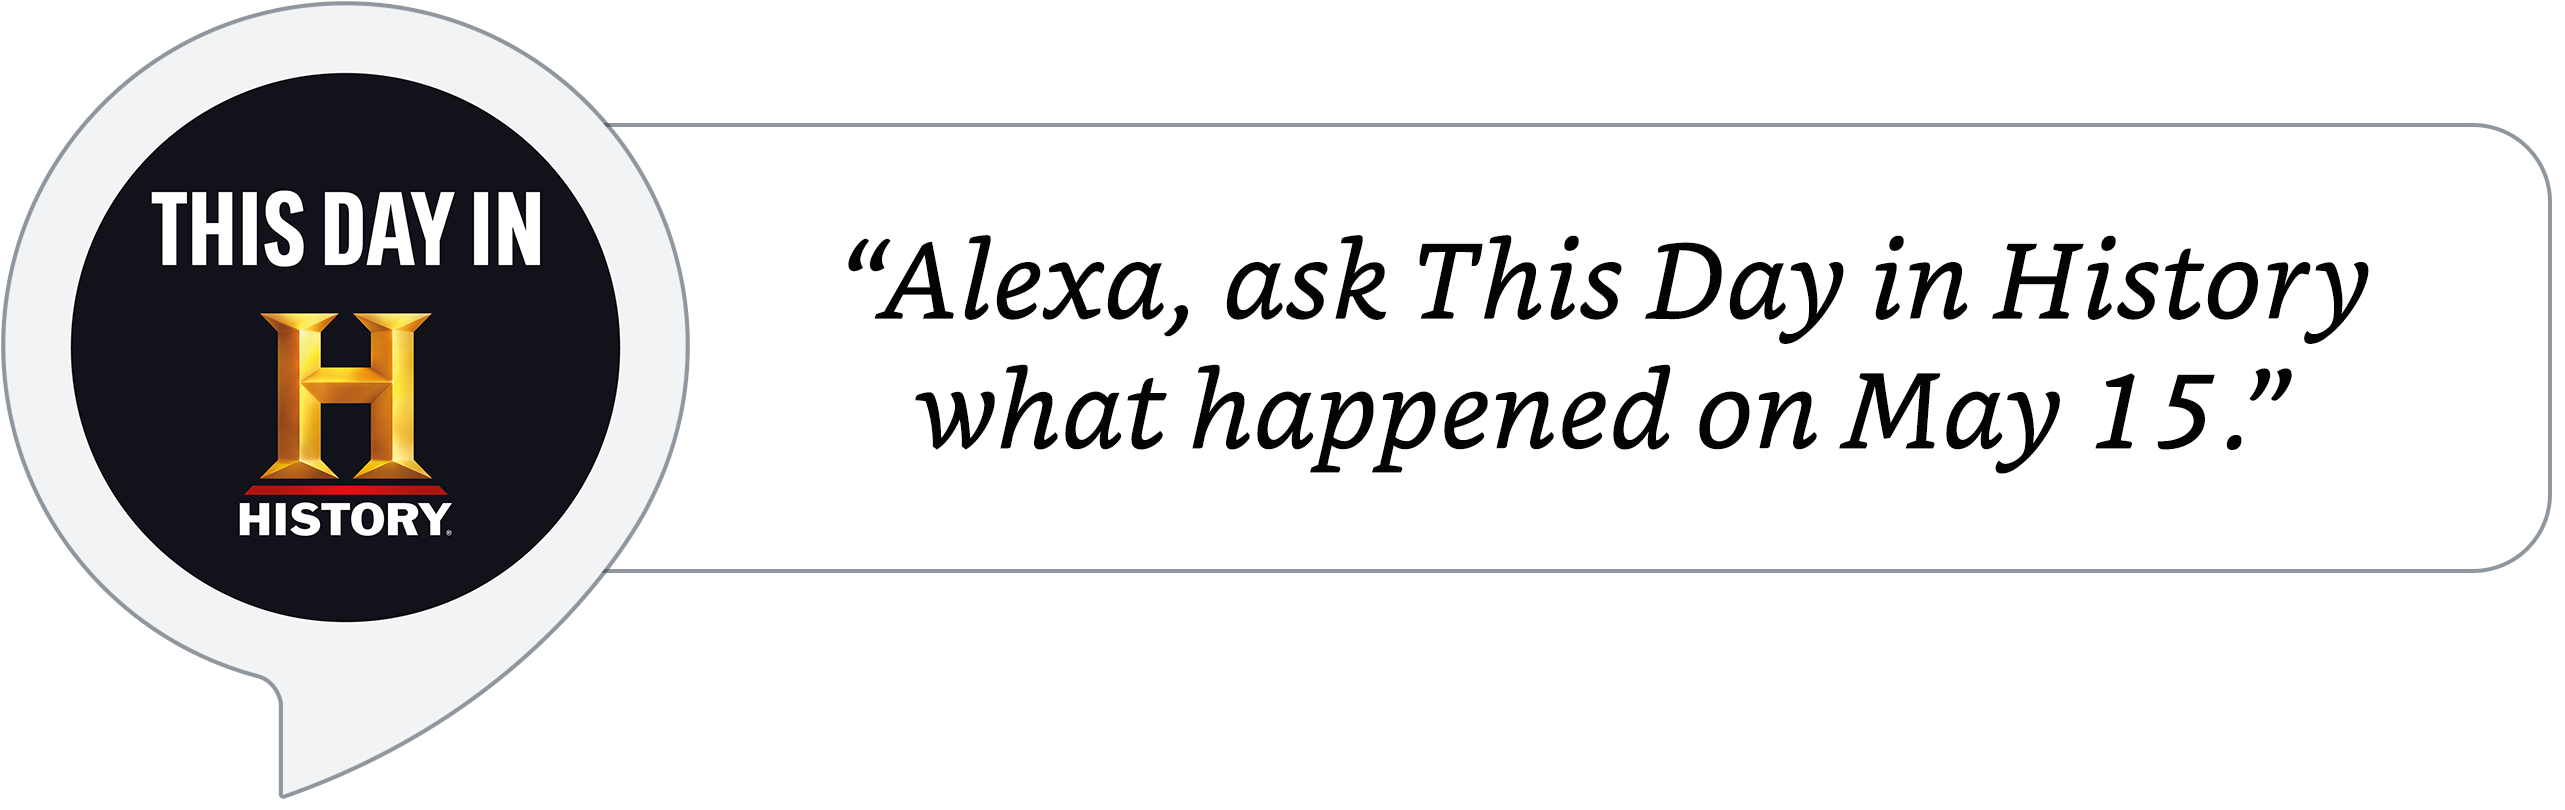 Alexa, ask This Day in History what happened on May 15.